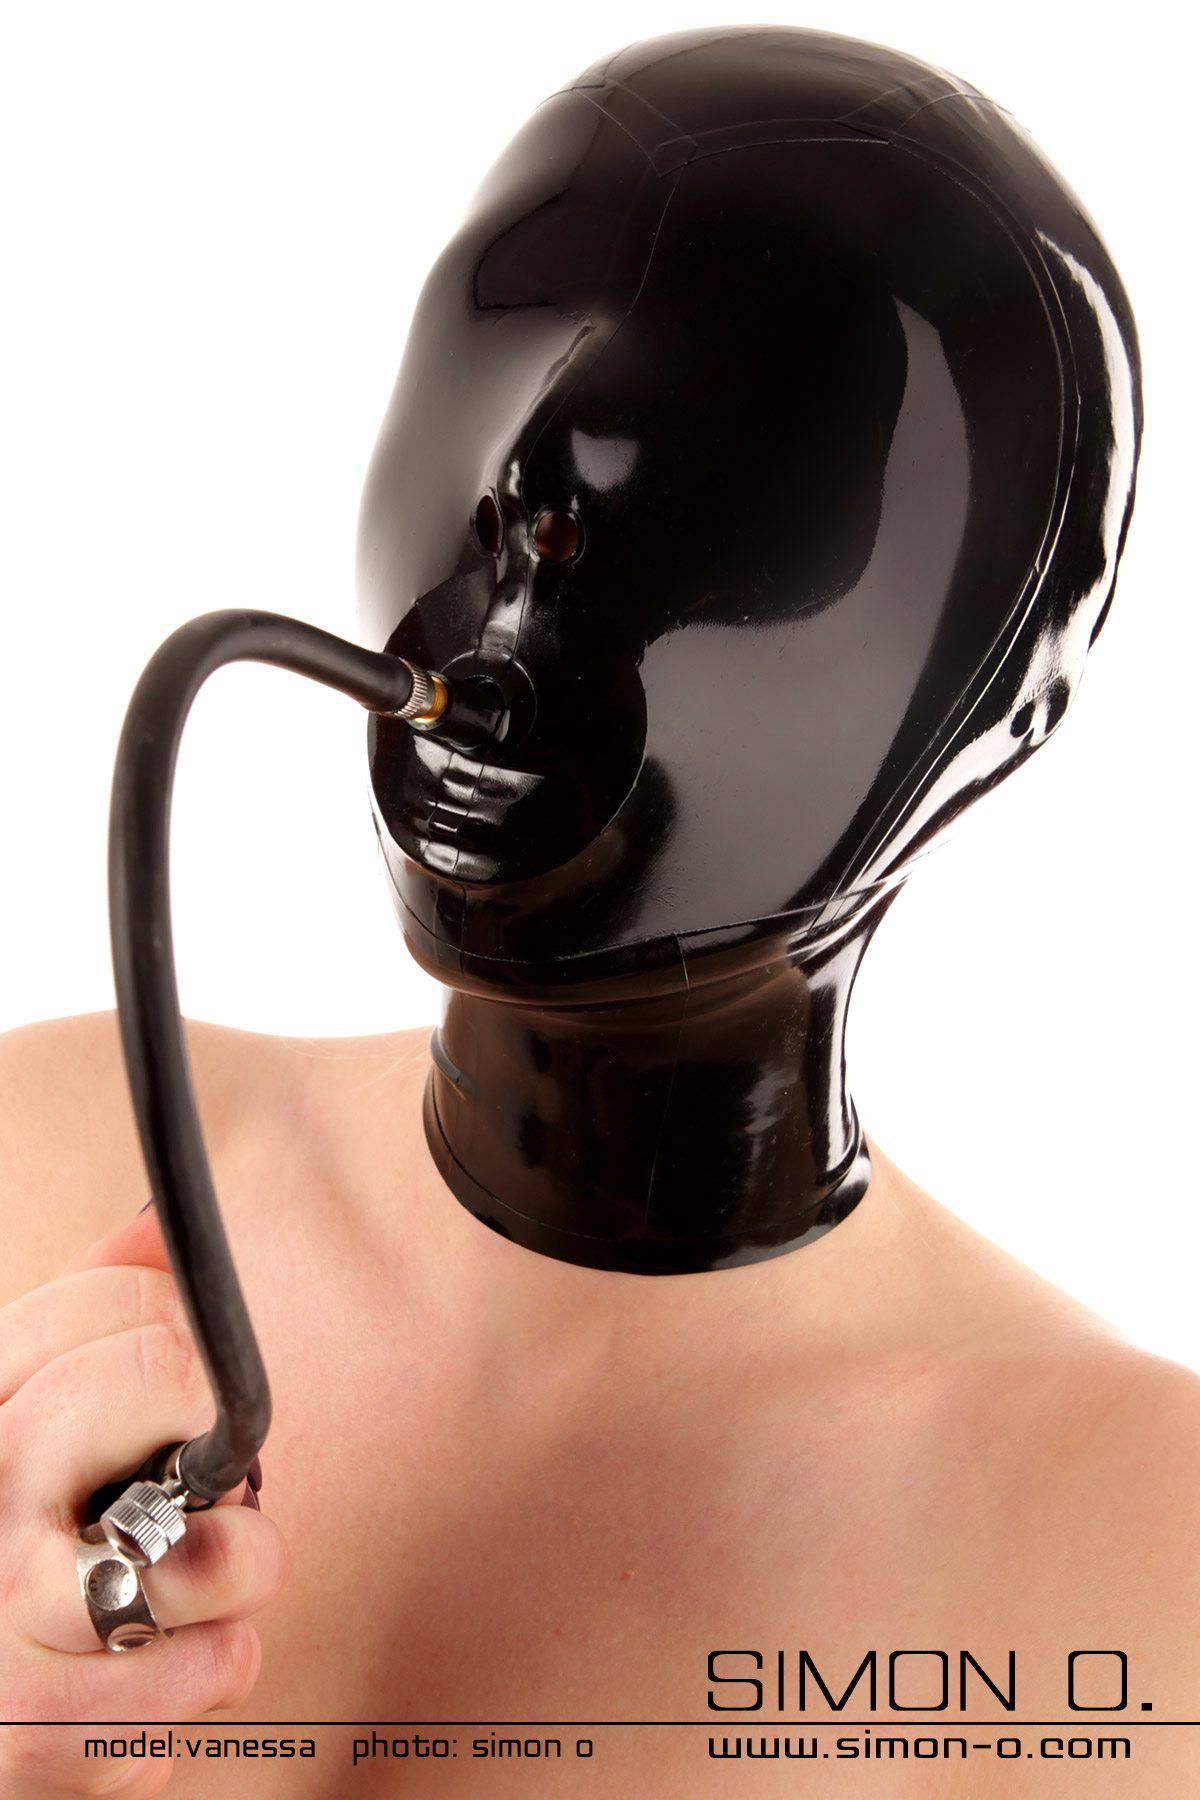 Slaves latex hood in black with closed eyes and inflatable gag